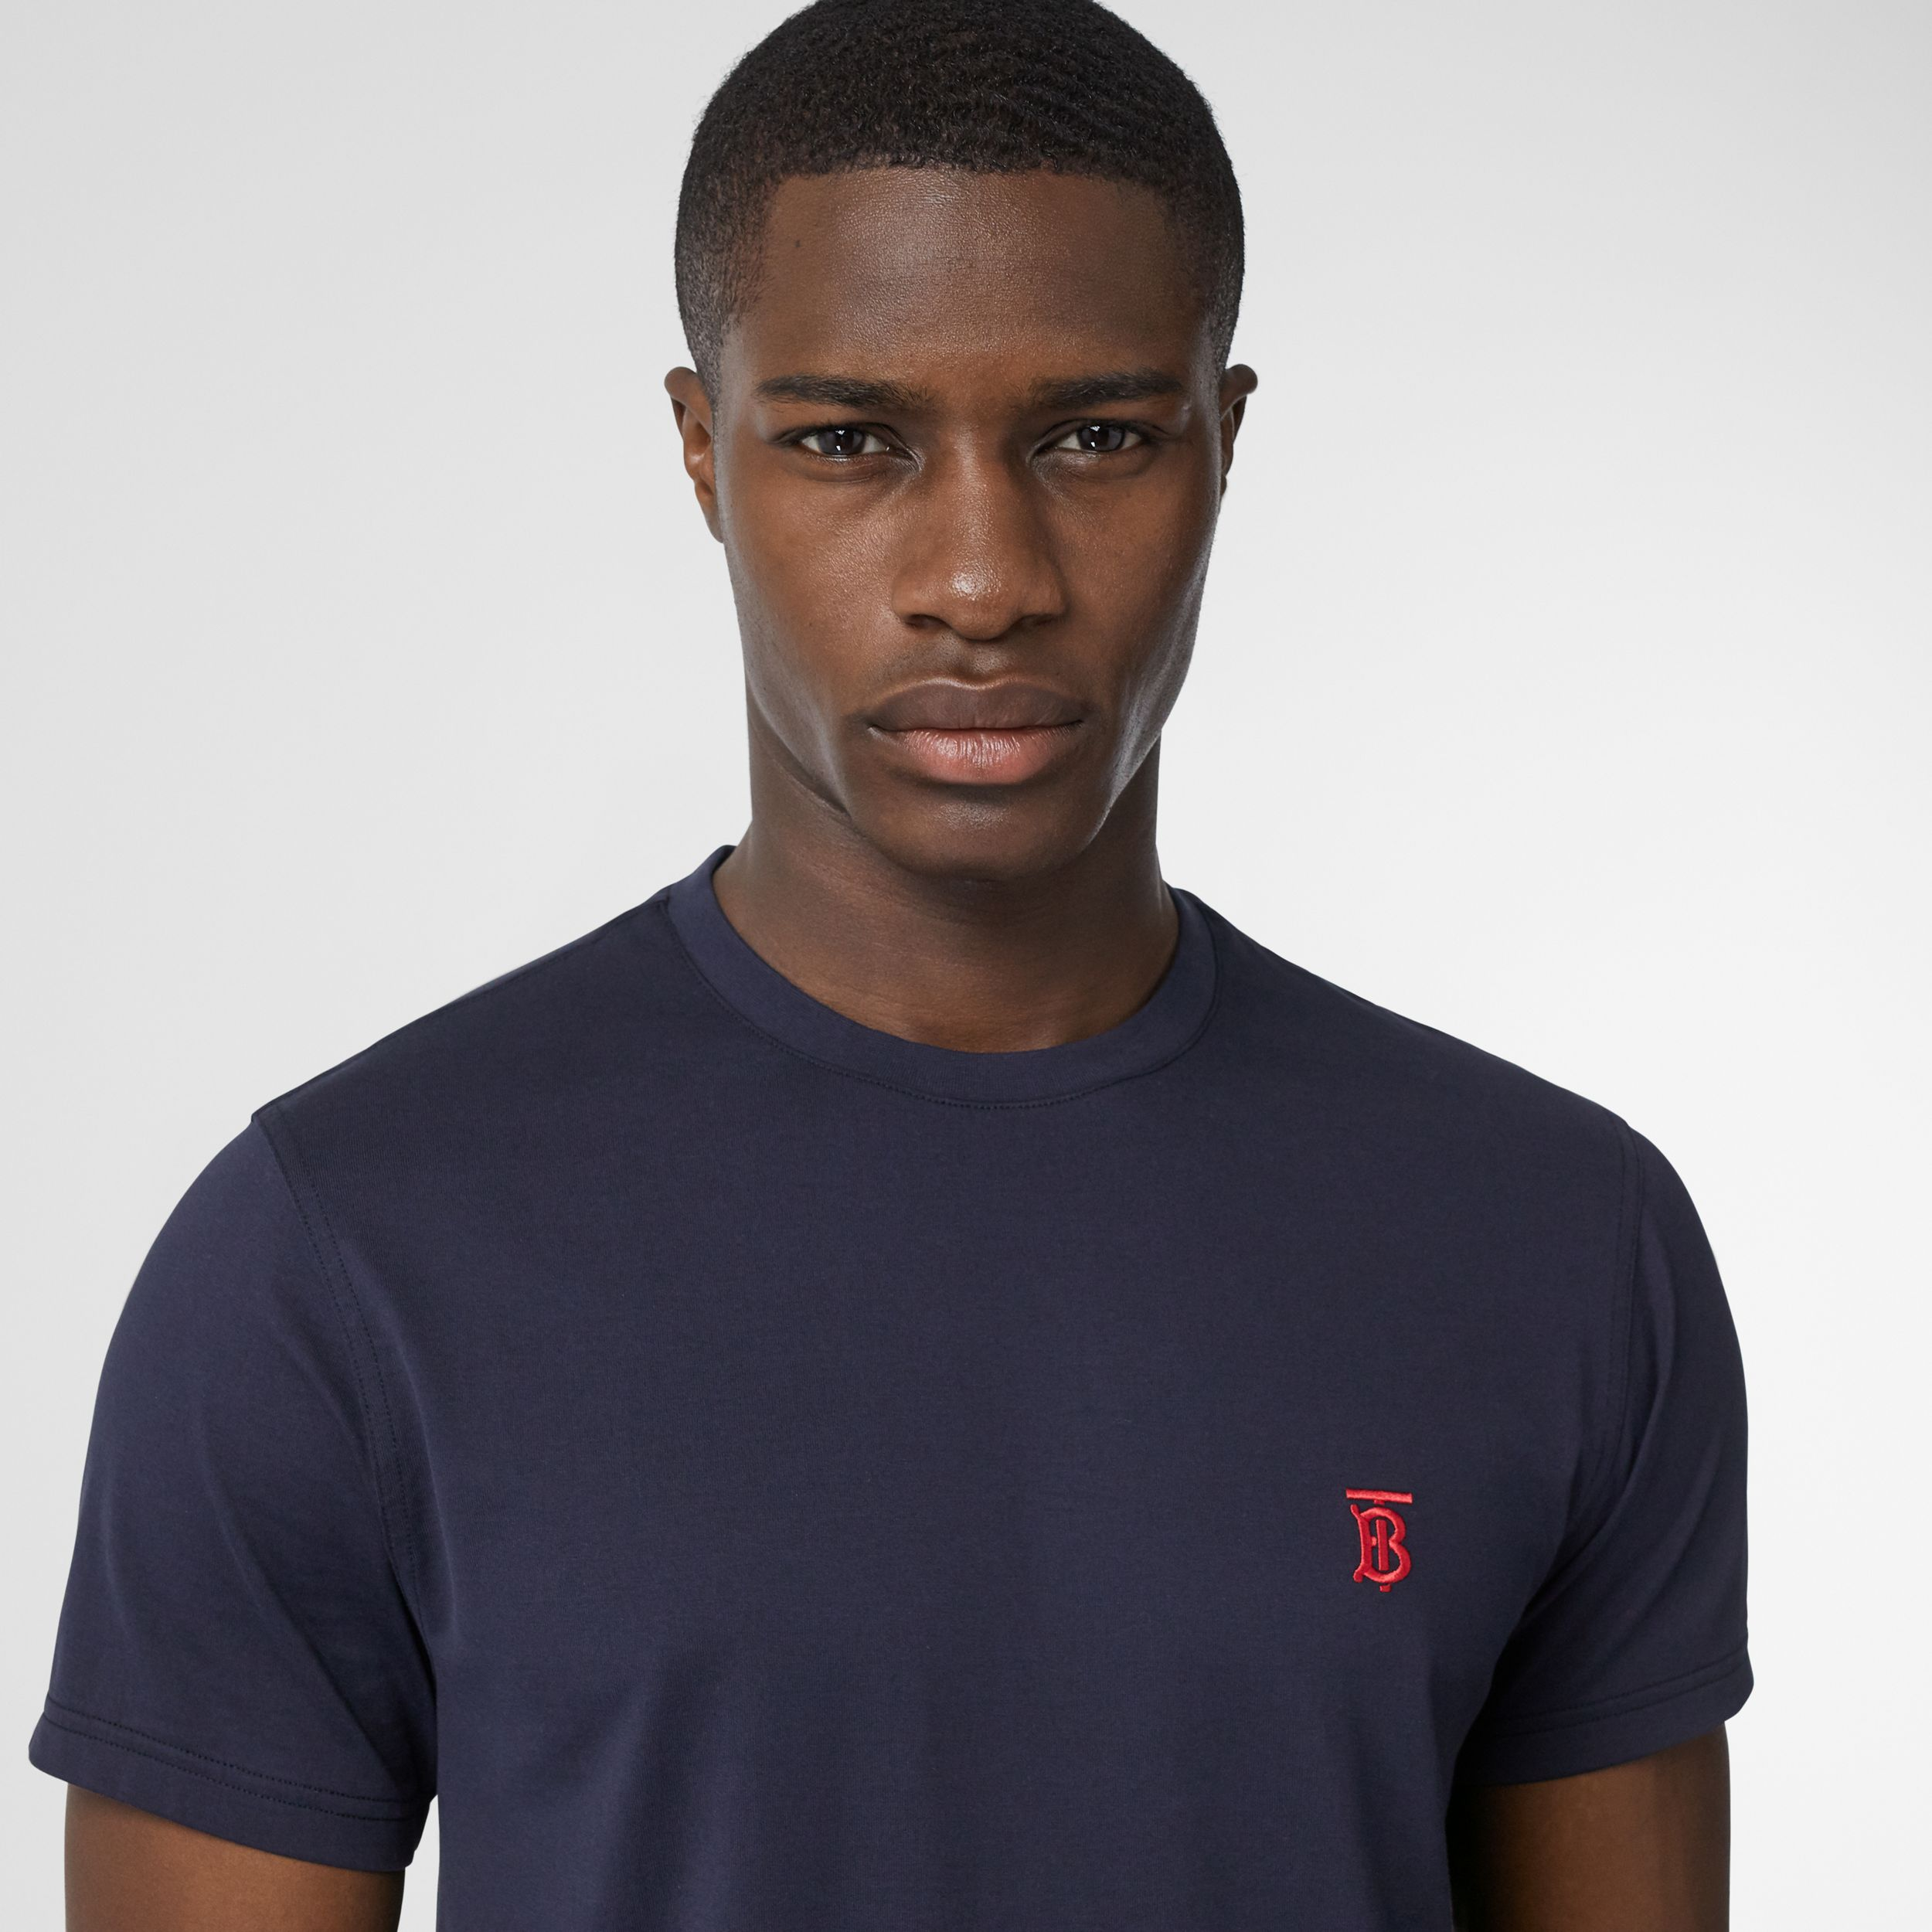 Monogram Motif Cotton T-shirt in Navy - Men | Burberry - 2